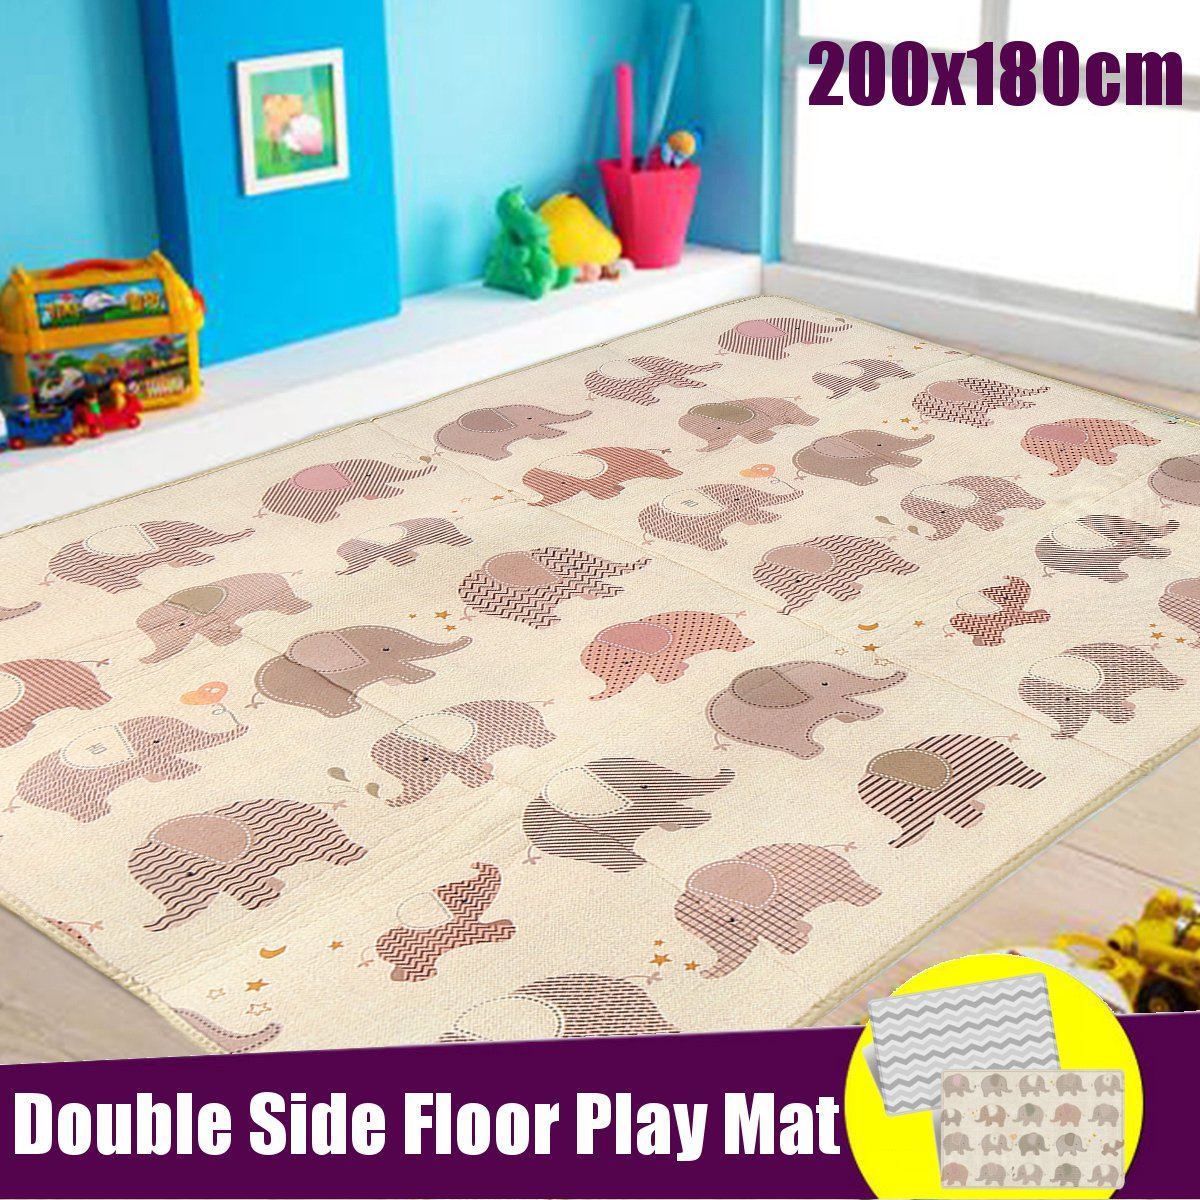 200x180cm Foldable Cartoon Baby Play Mat Thick Crawling Cover Game Mat Carpet LDPE Waterproof Parlor Floor Climbing Game Blanket